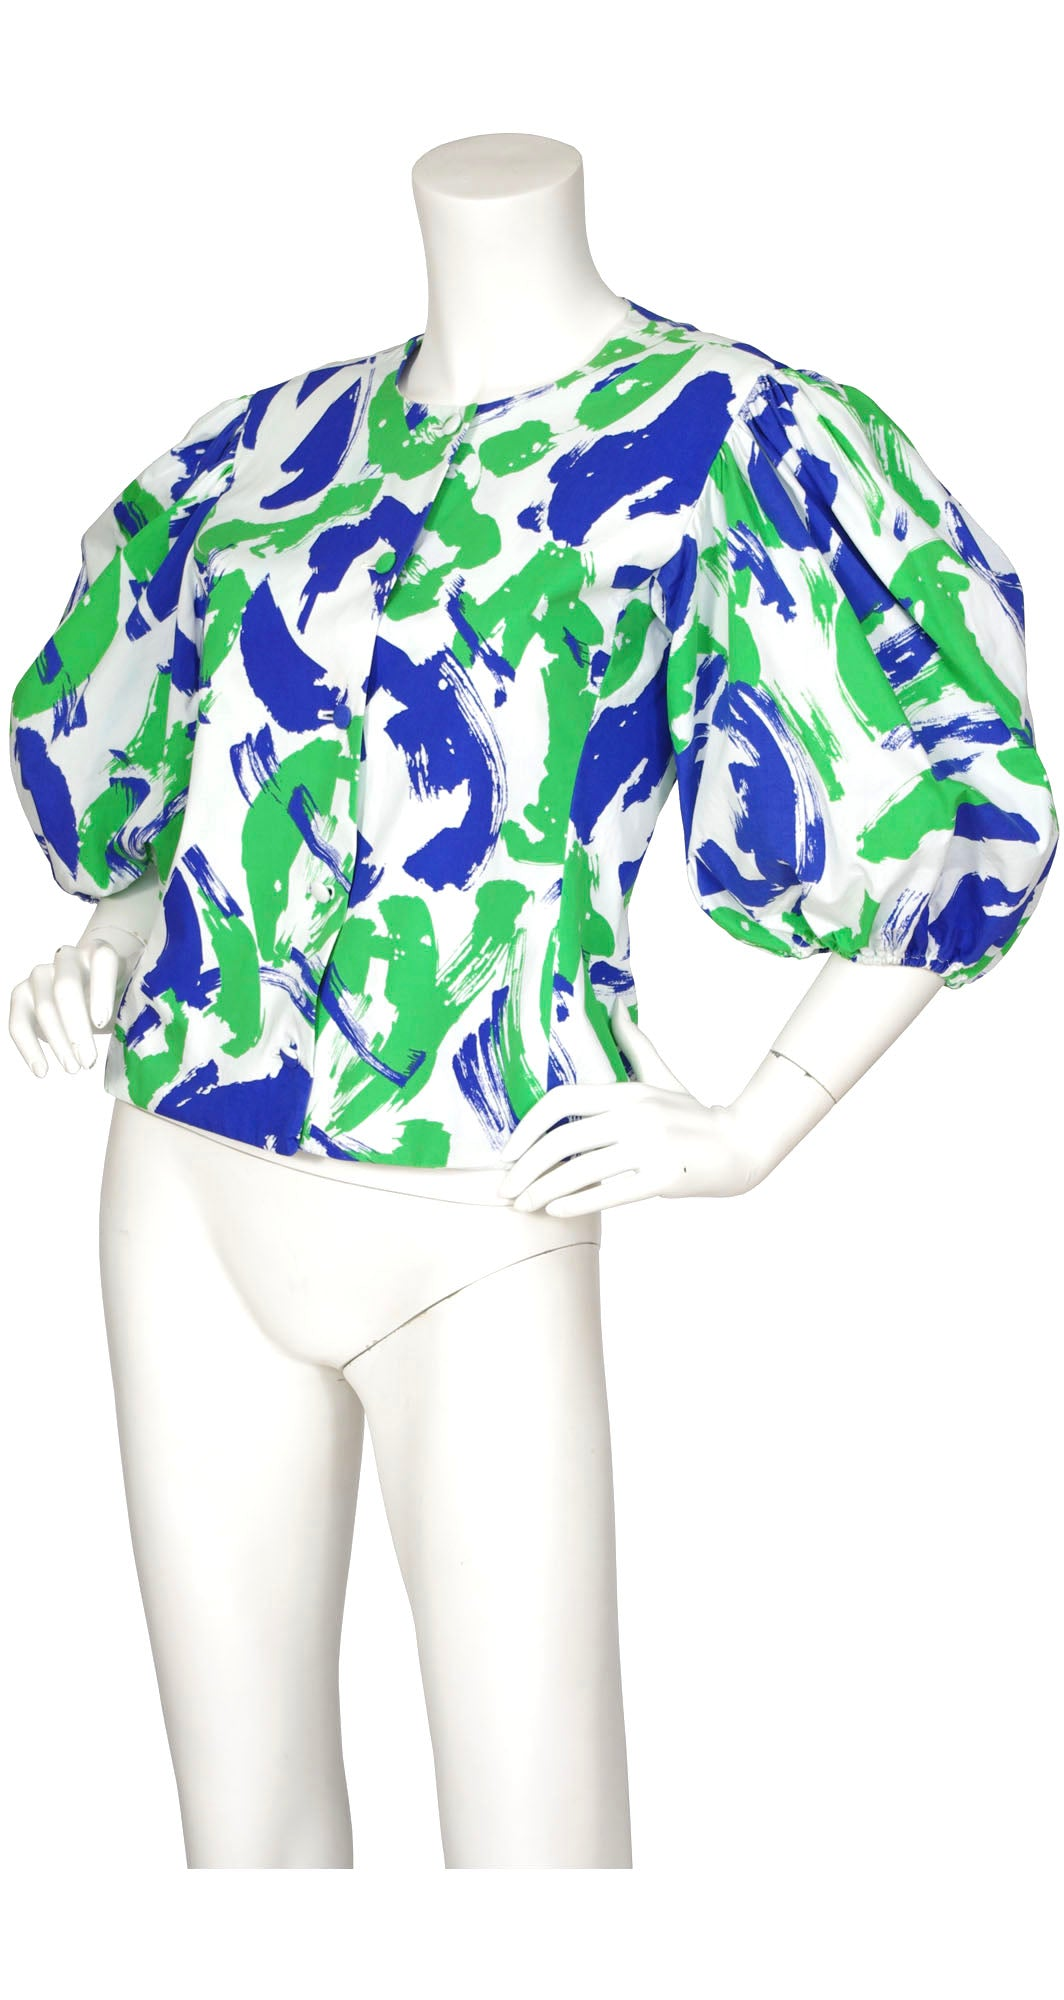 1980s Dramatic Puff Sleeved Abstract Cotton Blouse